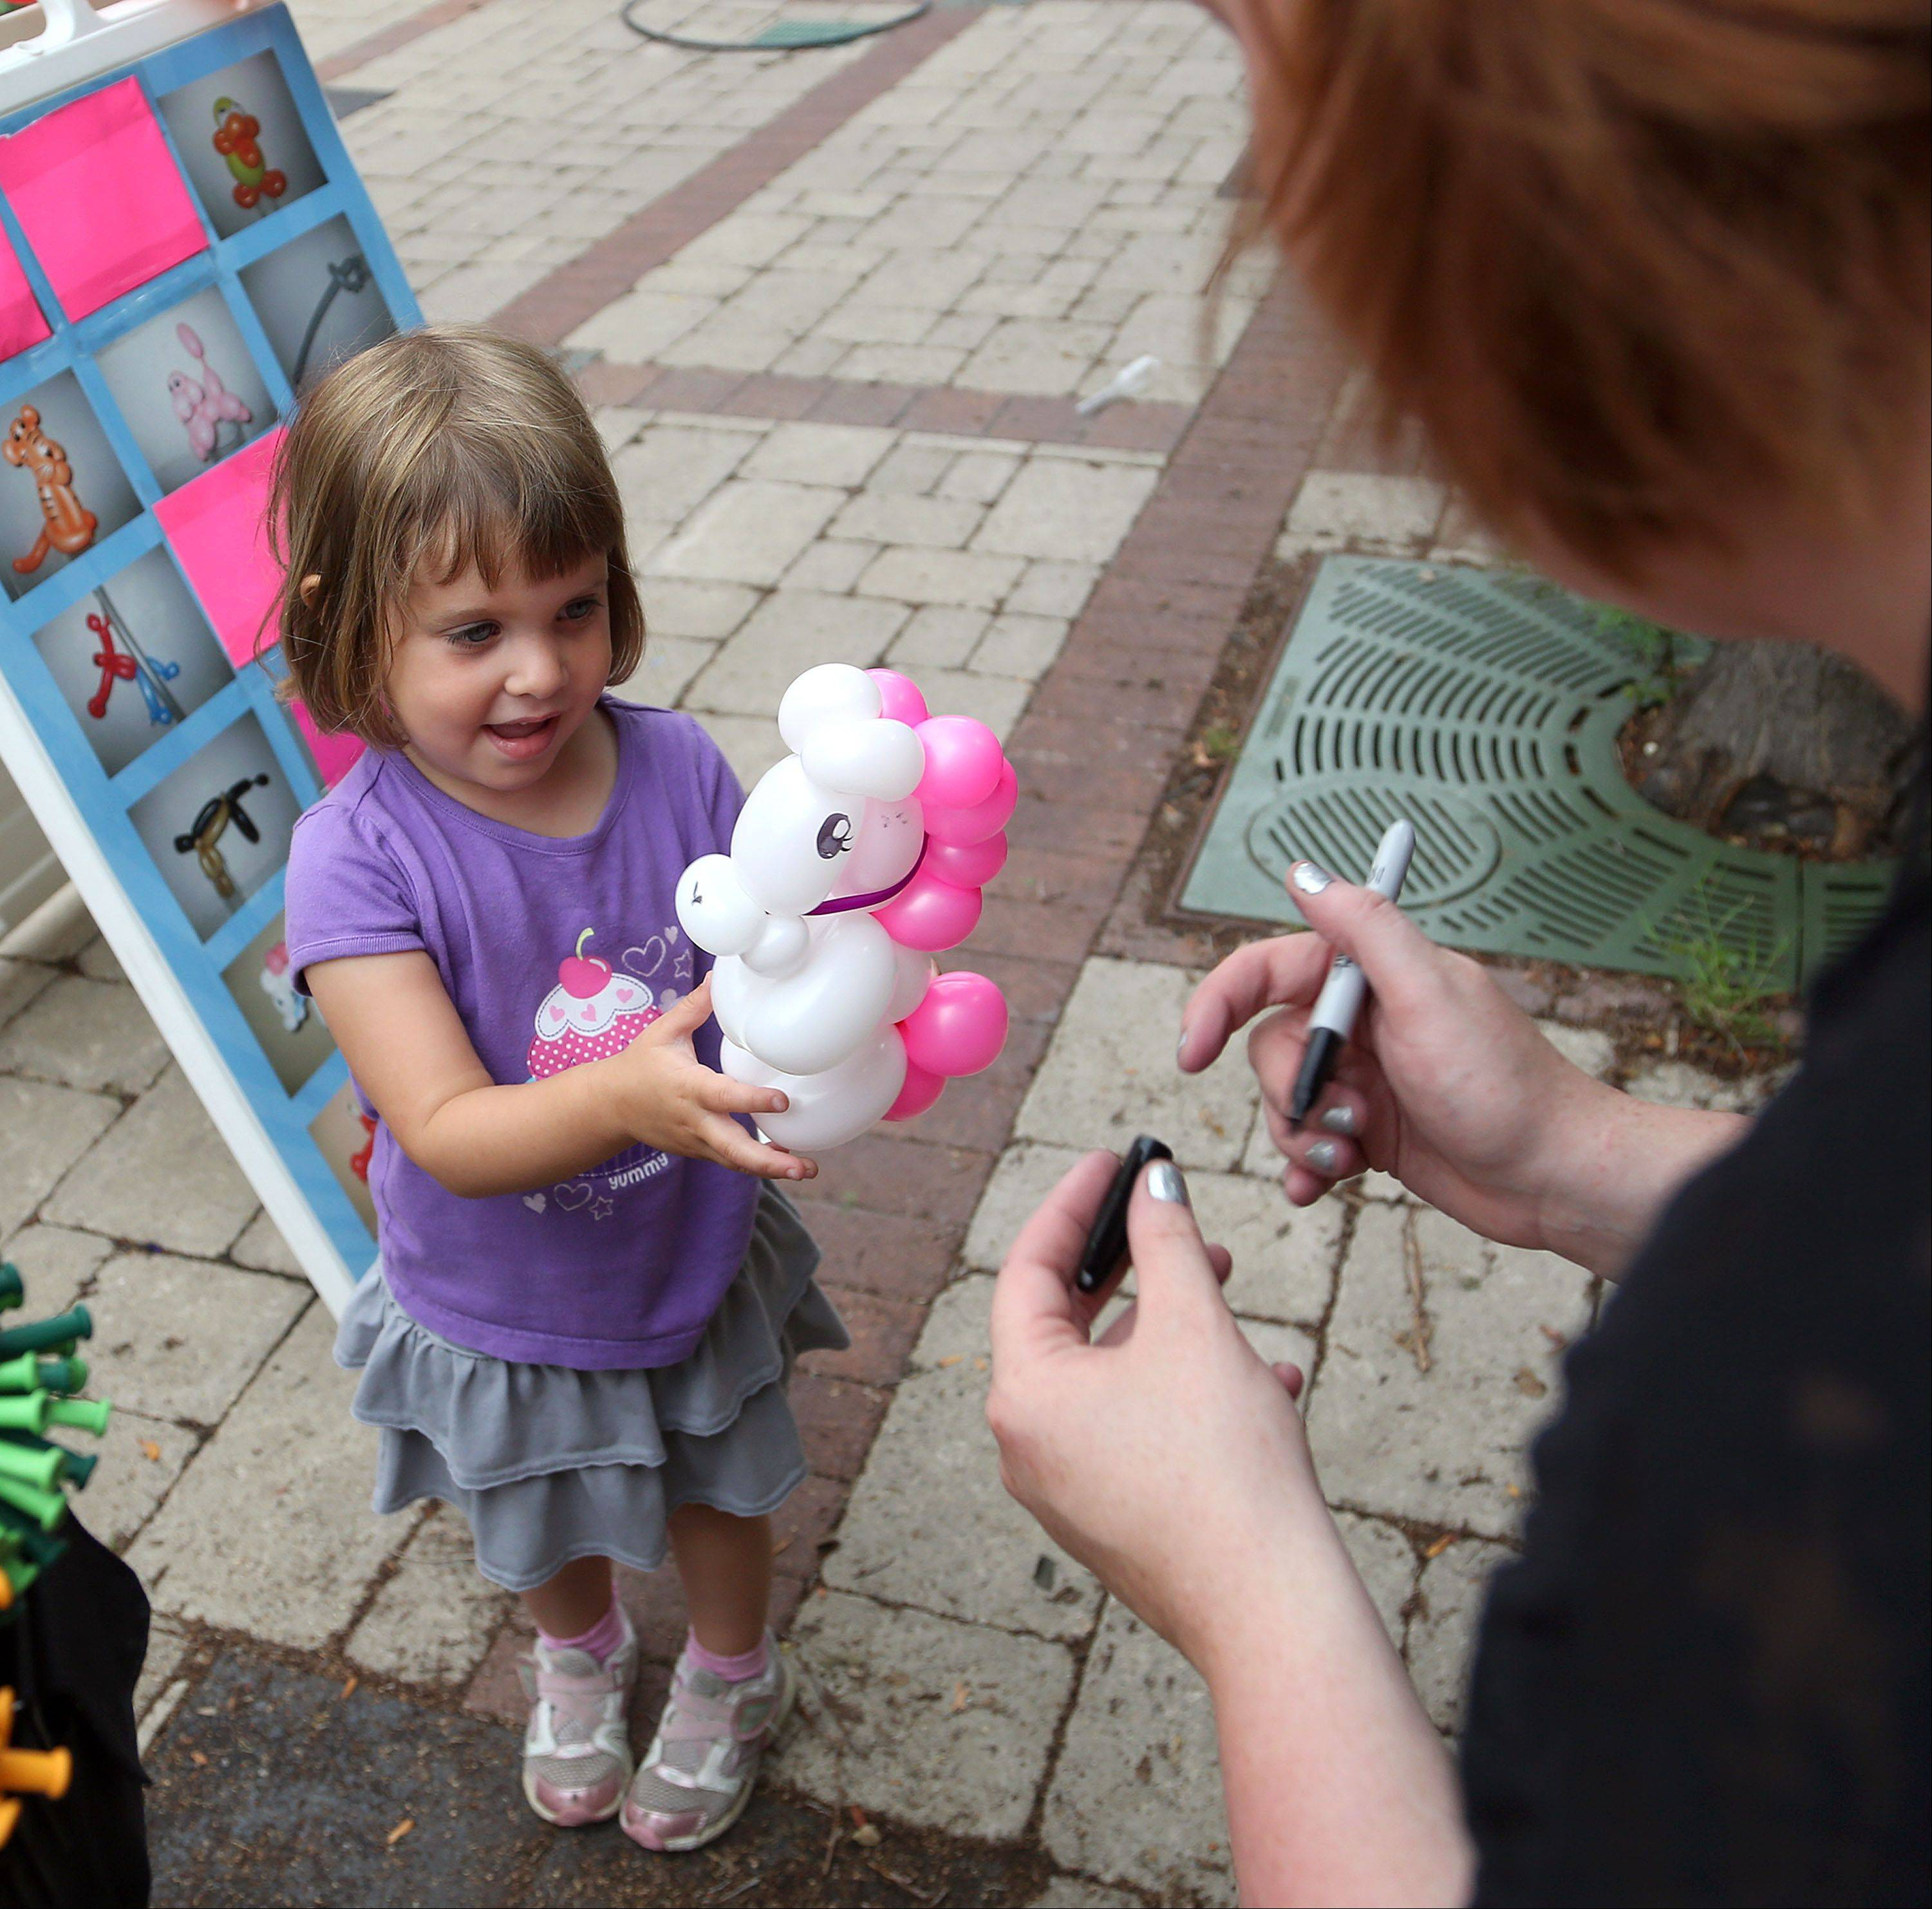 Lauren Miller, 3, of Grayslake, gets a balloon animal made by Amber Burkey, of Winthrop Harbor, as Grayslake held it's weekly farmers market.